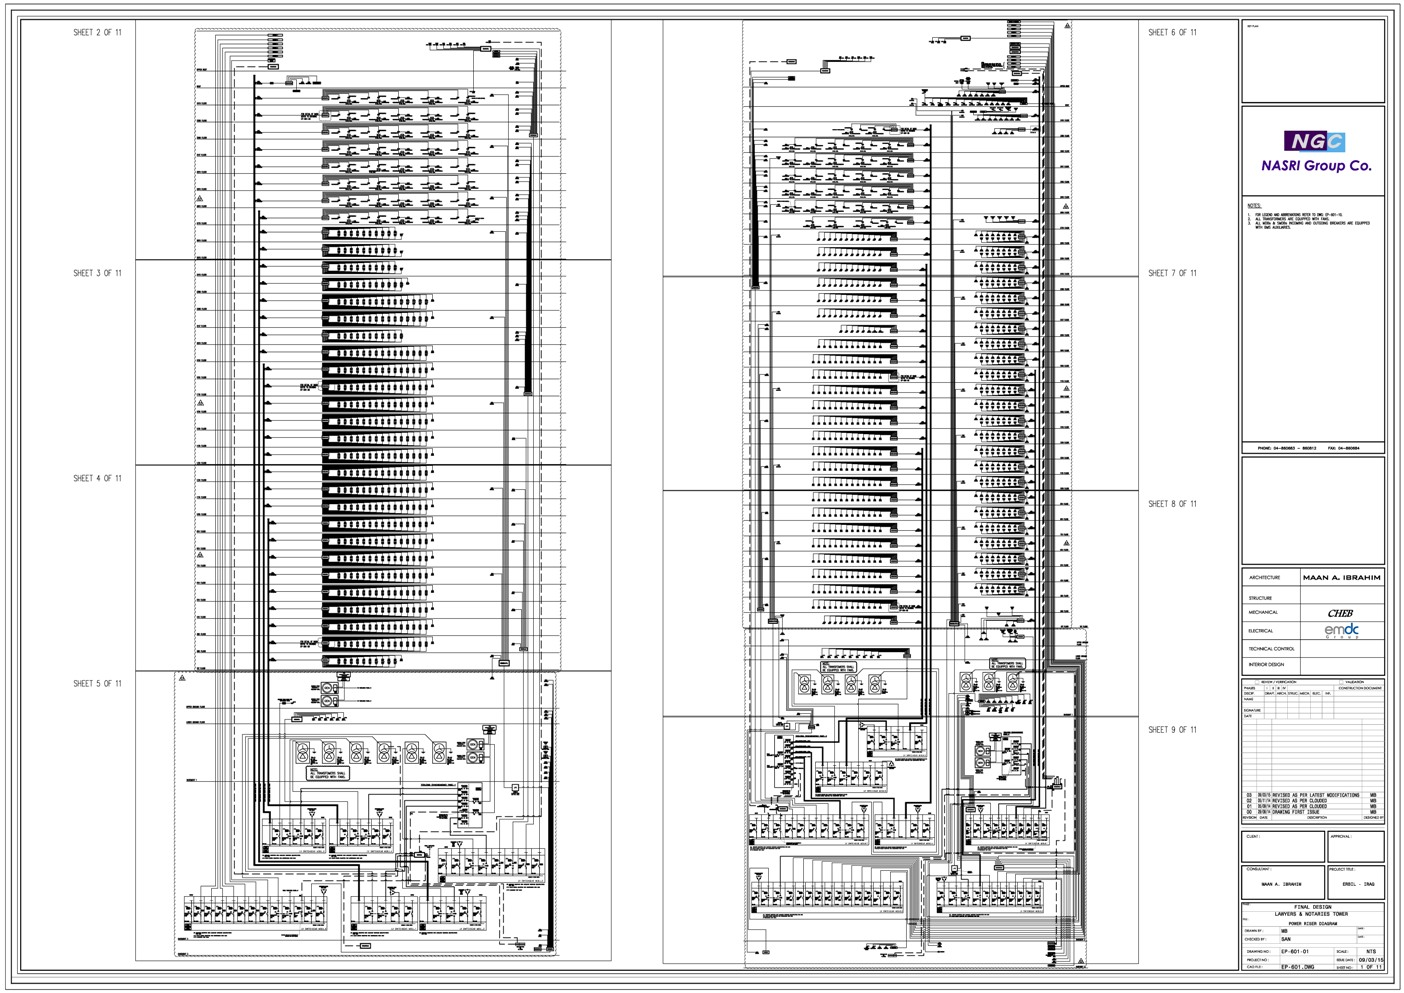 Cheb middle east and lebanon mep mechanical electrical plumbing high rise building diagram power publicscrutiny Images